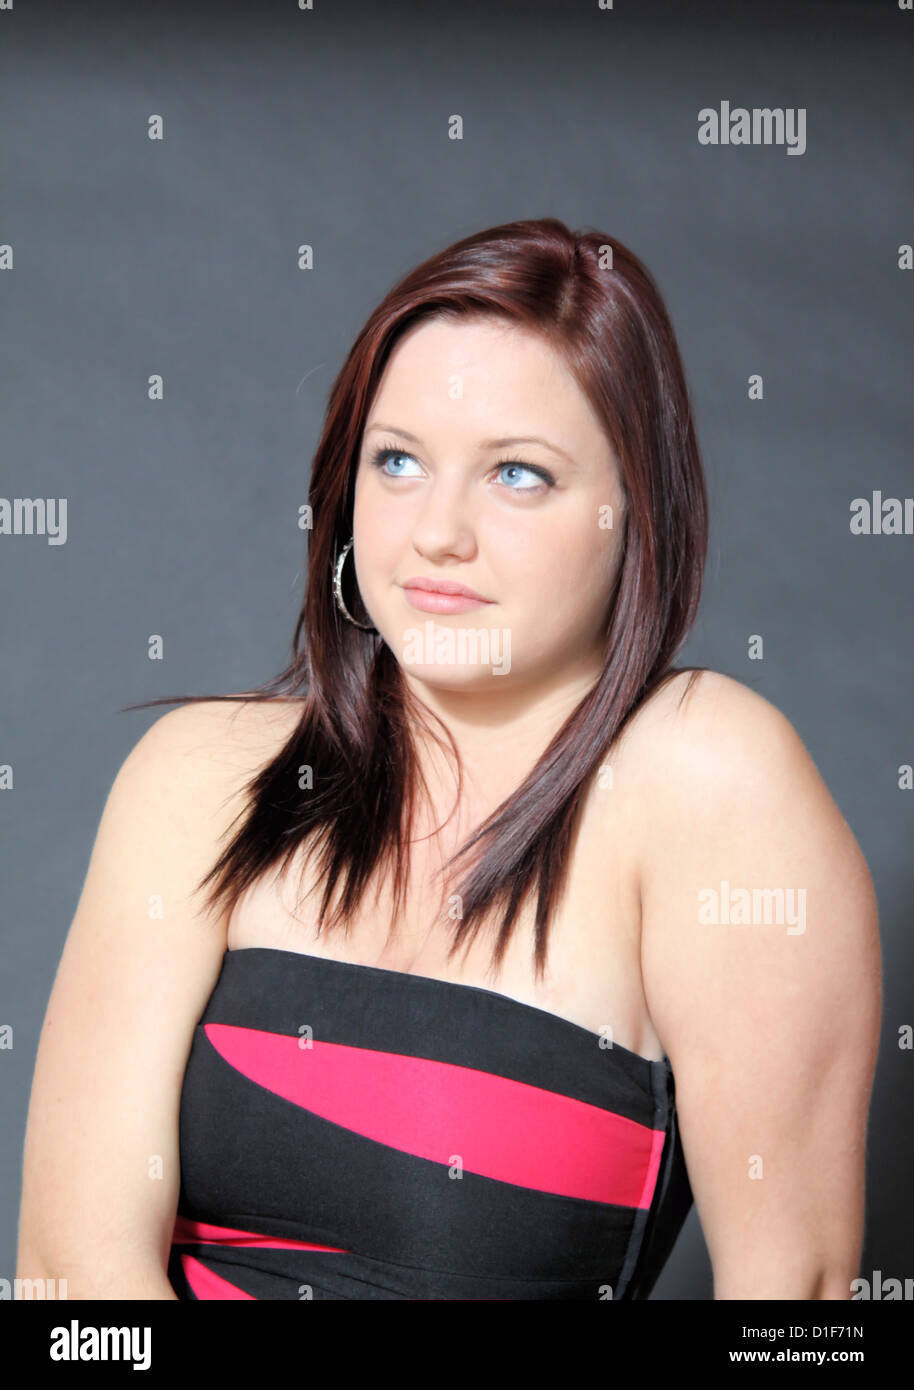 Beautiful Blue Eyed Teenager With Red Highlights In Her Hair Stock